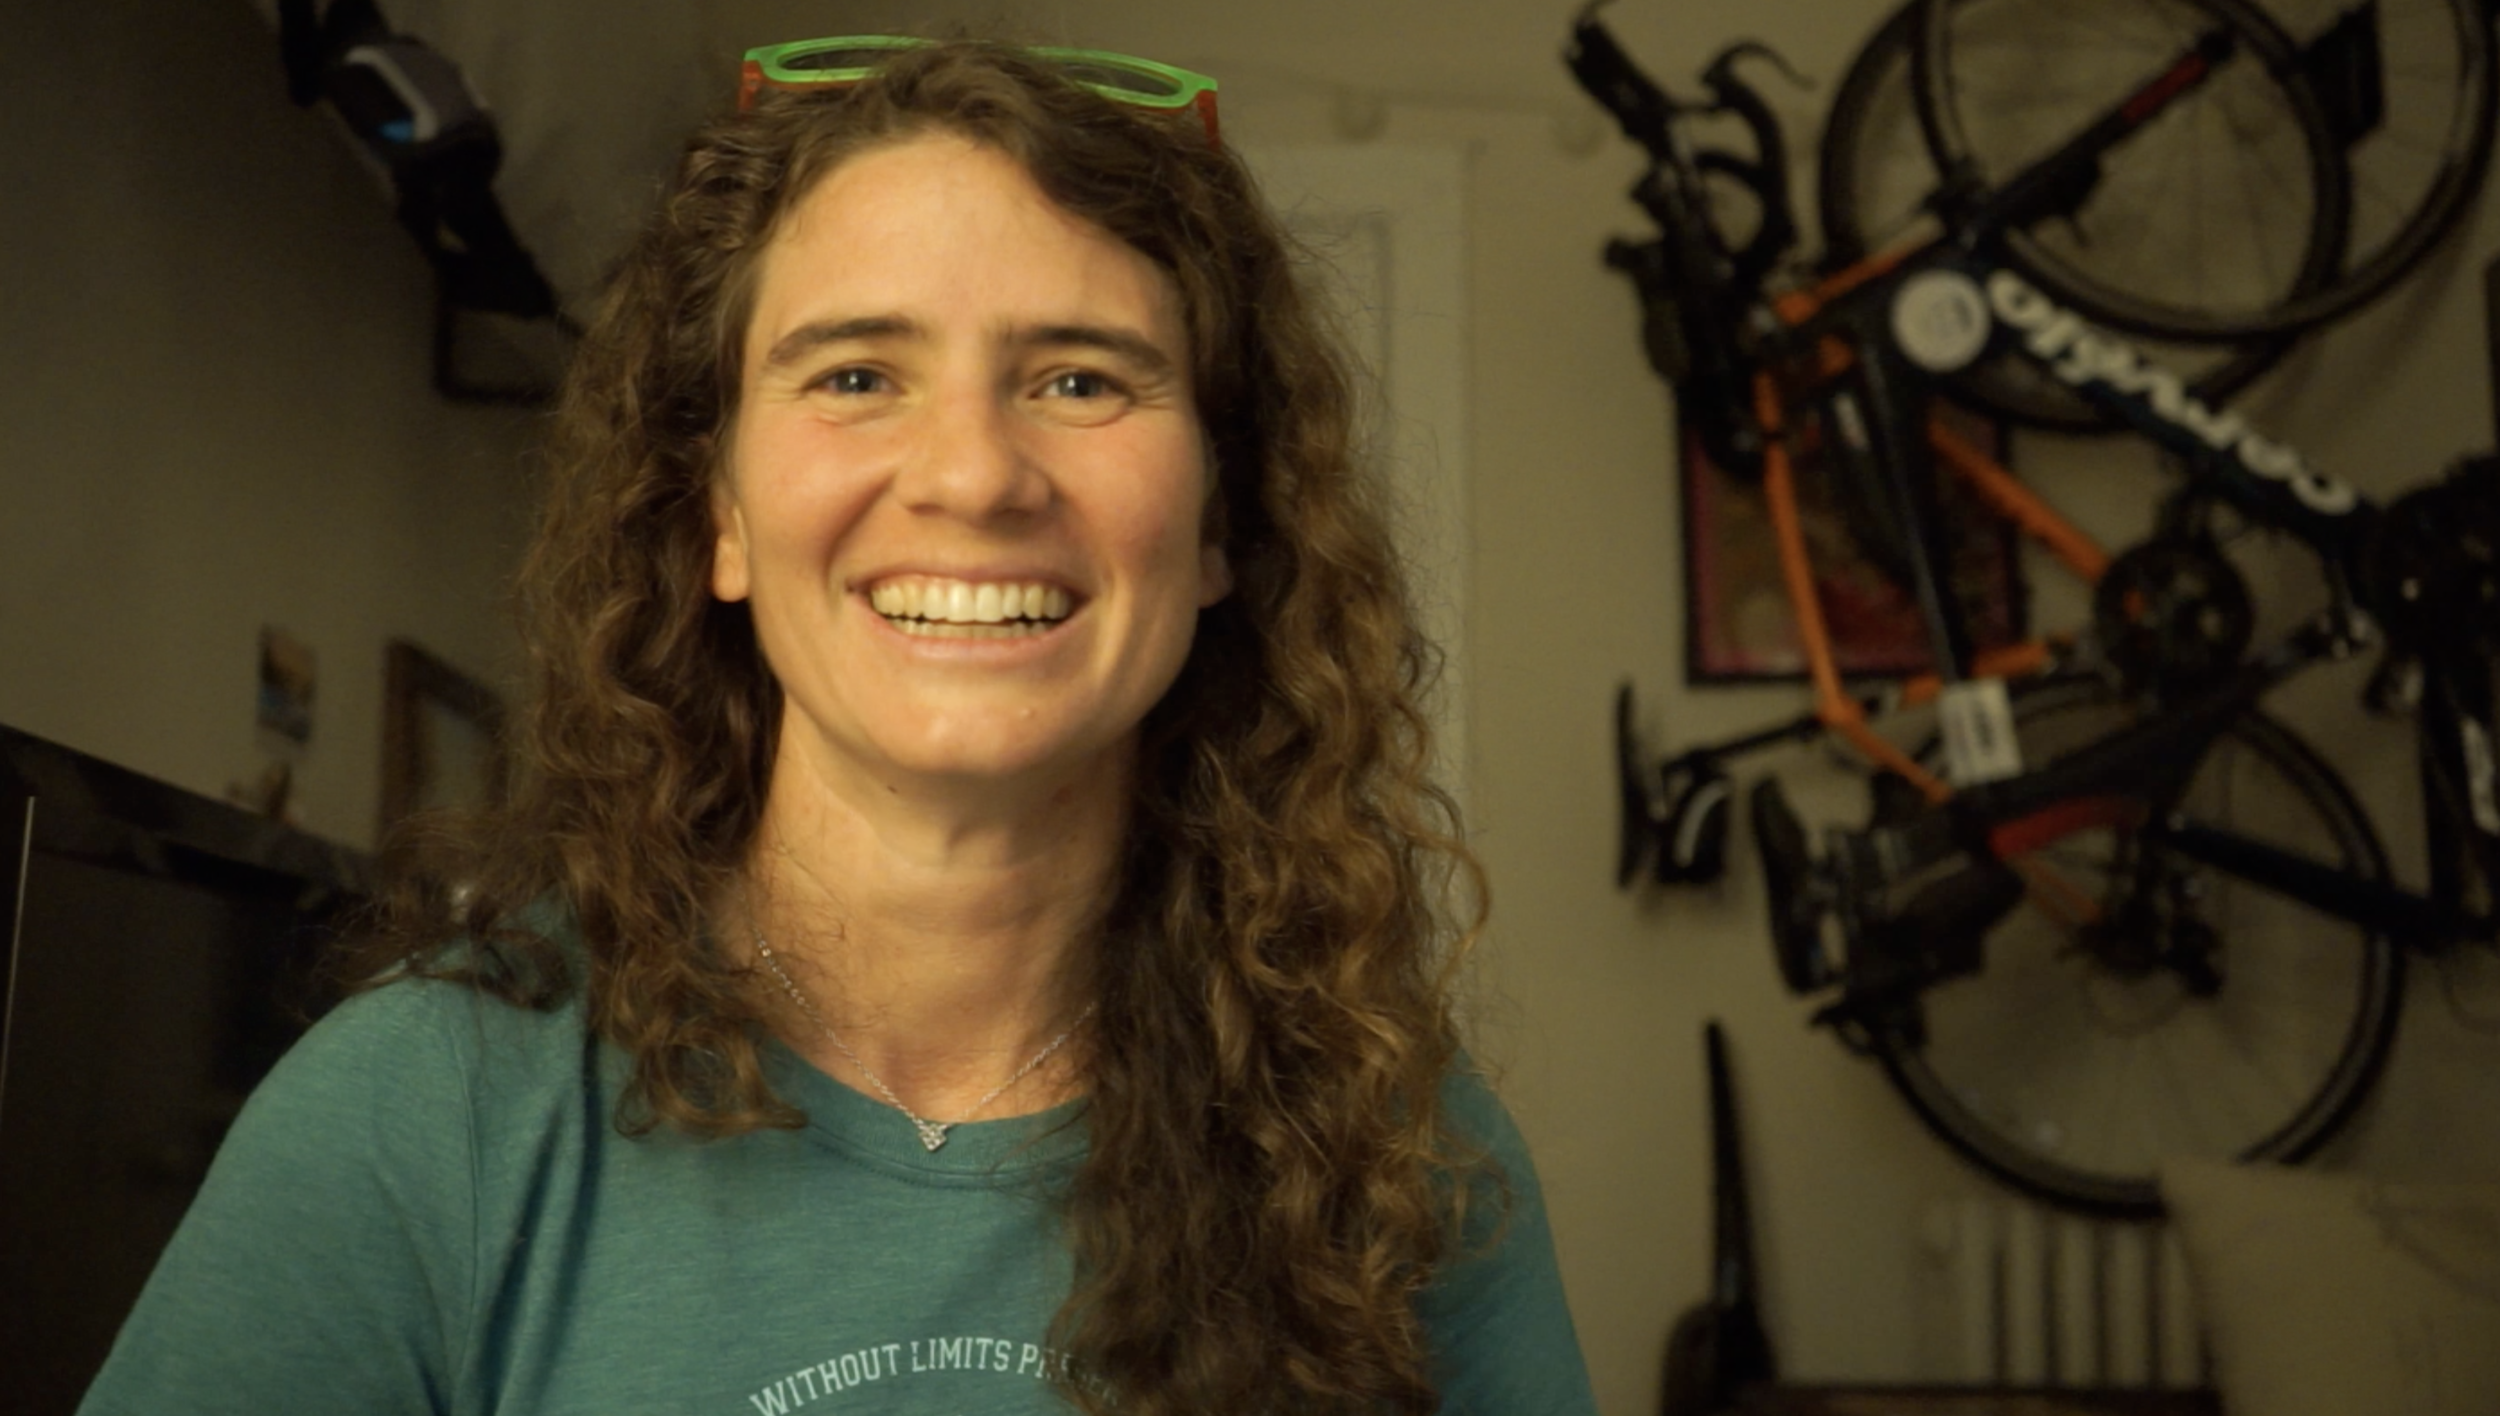 Your Guide - Erin Agee - From Boulder, Colorado, Erin is a cyclist, triathlete, and white water enthusiast. Erin has lived in Thailand, Spain, and Ireland, and loves widening her comfort zone in new countries with new friends. Having helped guide groups on multi-day backpacking and white water rafting trips since 2003, she's passionate about connecting with people in the beautiful and remote places that feed us all.